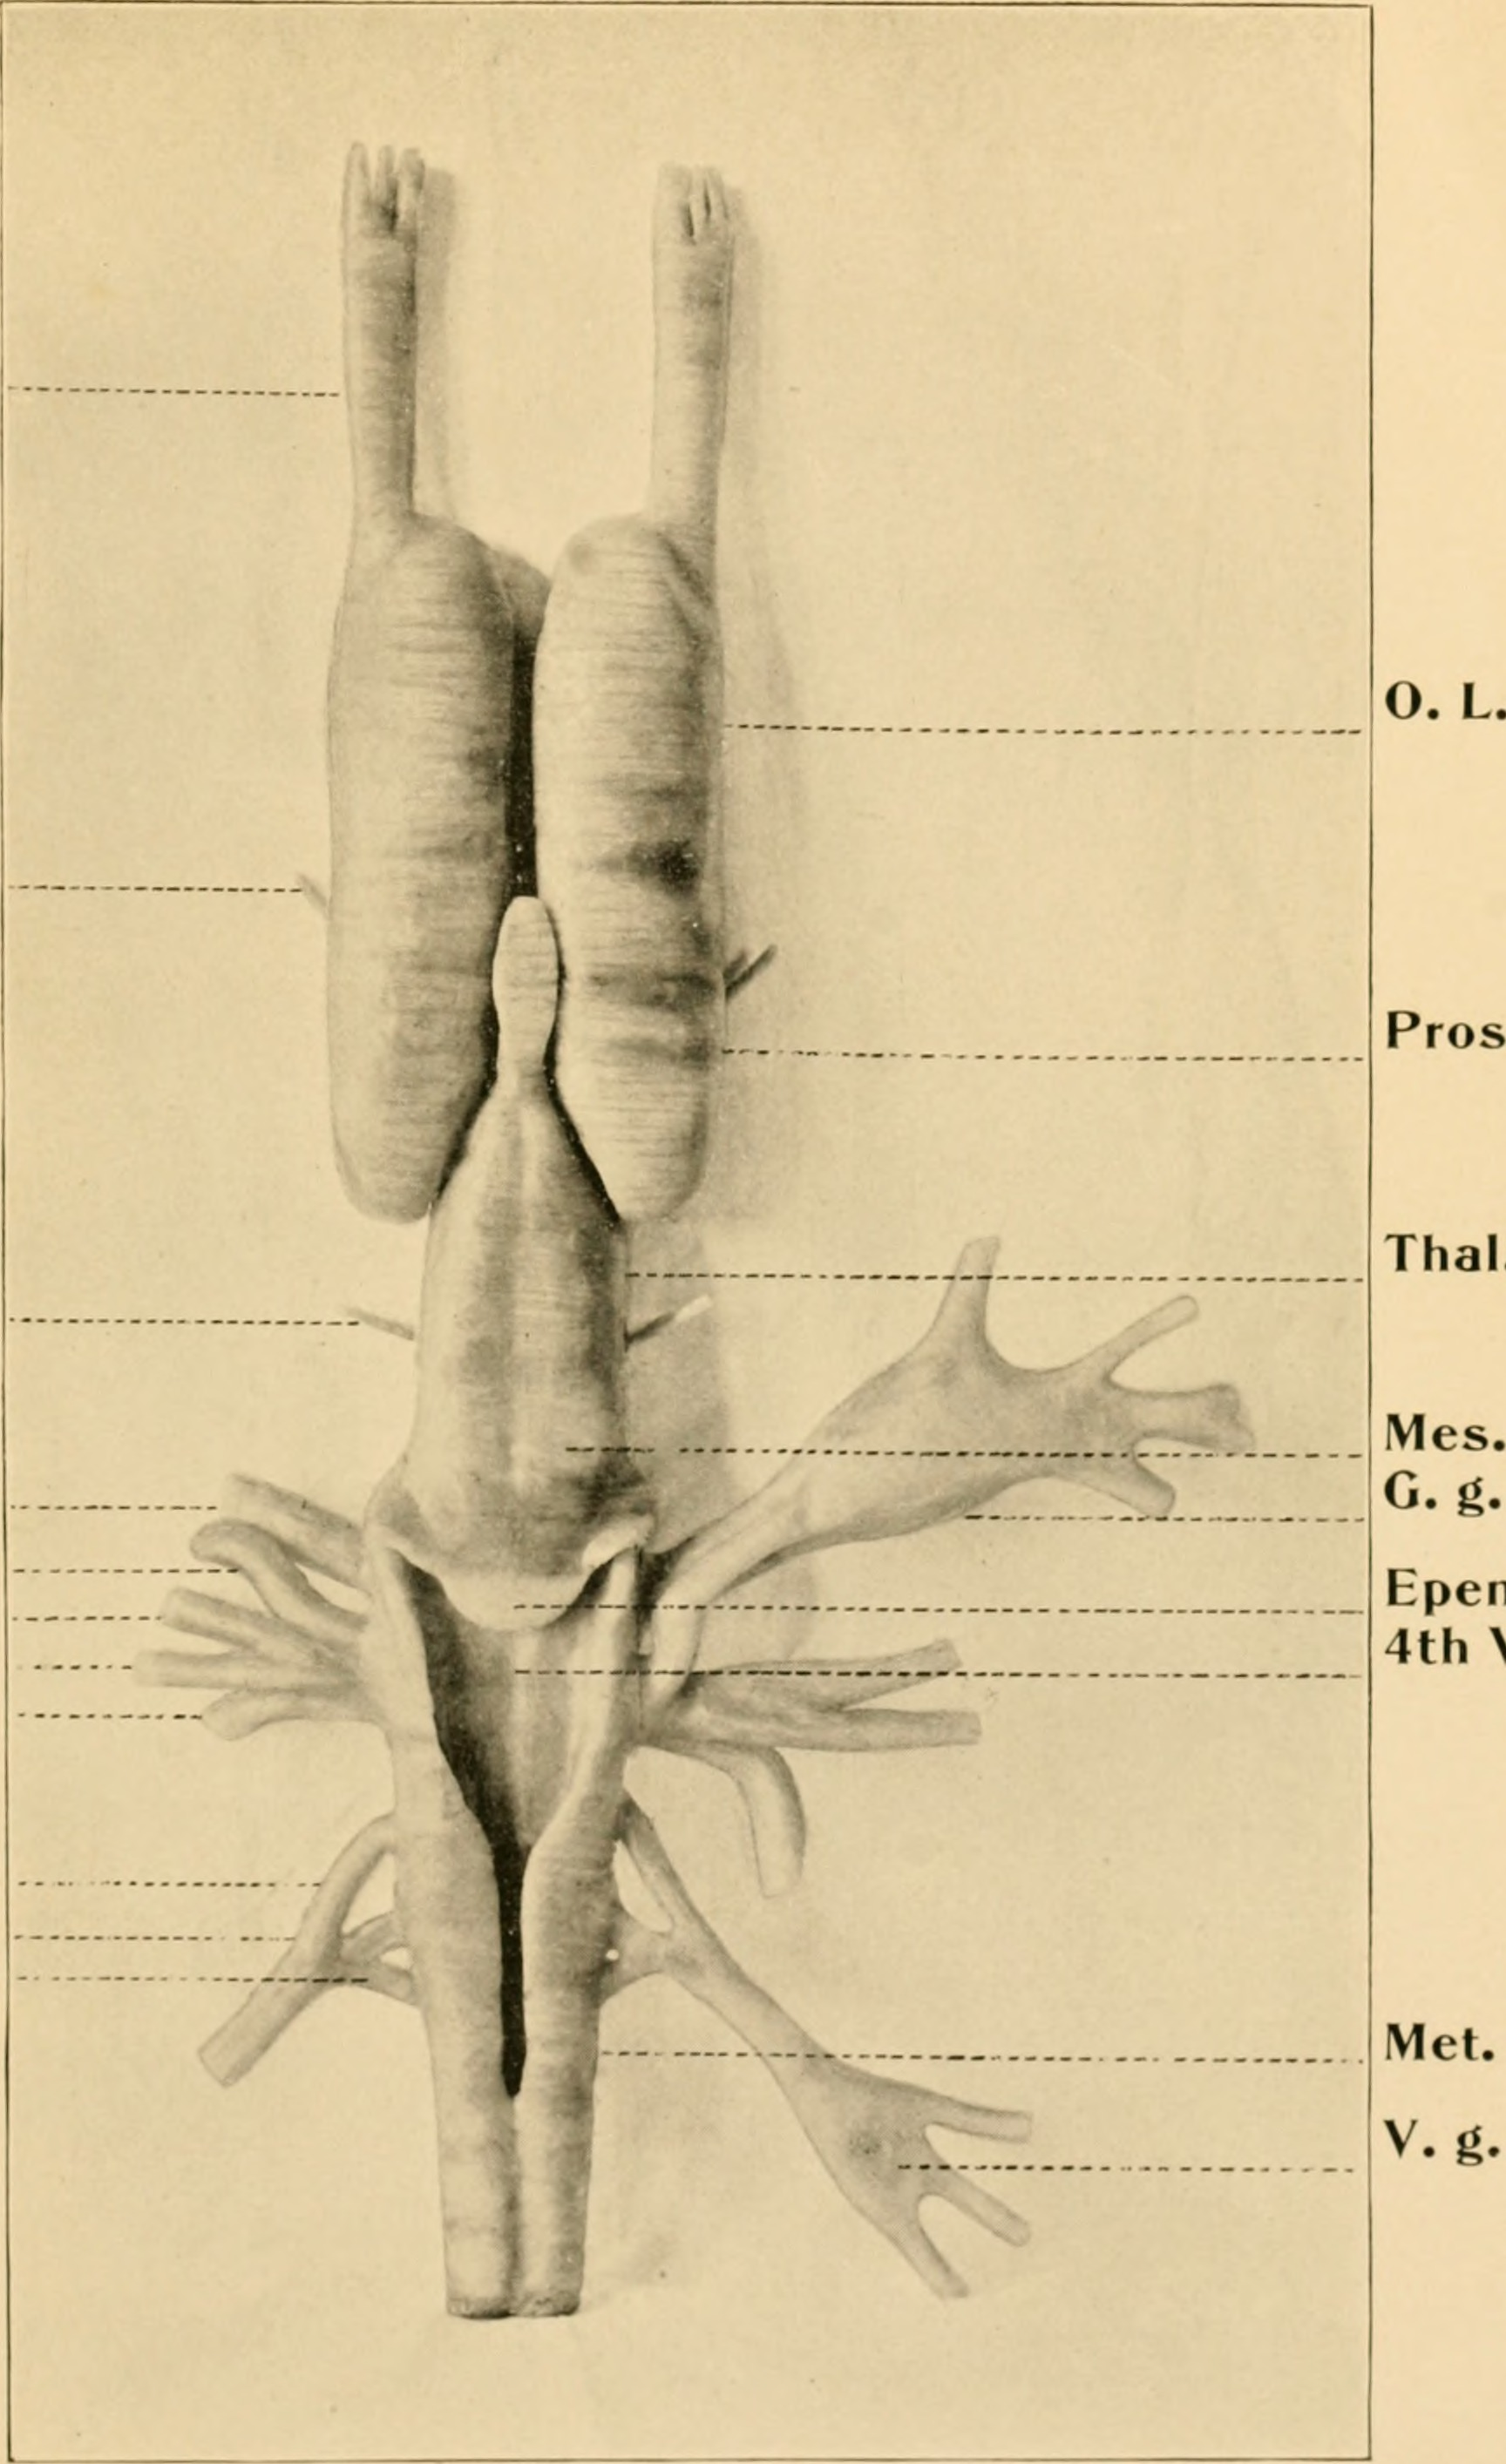 Filecontributions From The Anatomical Laboratory Of The University